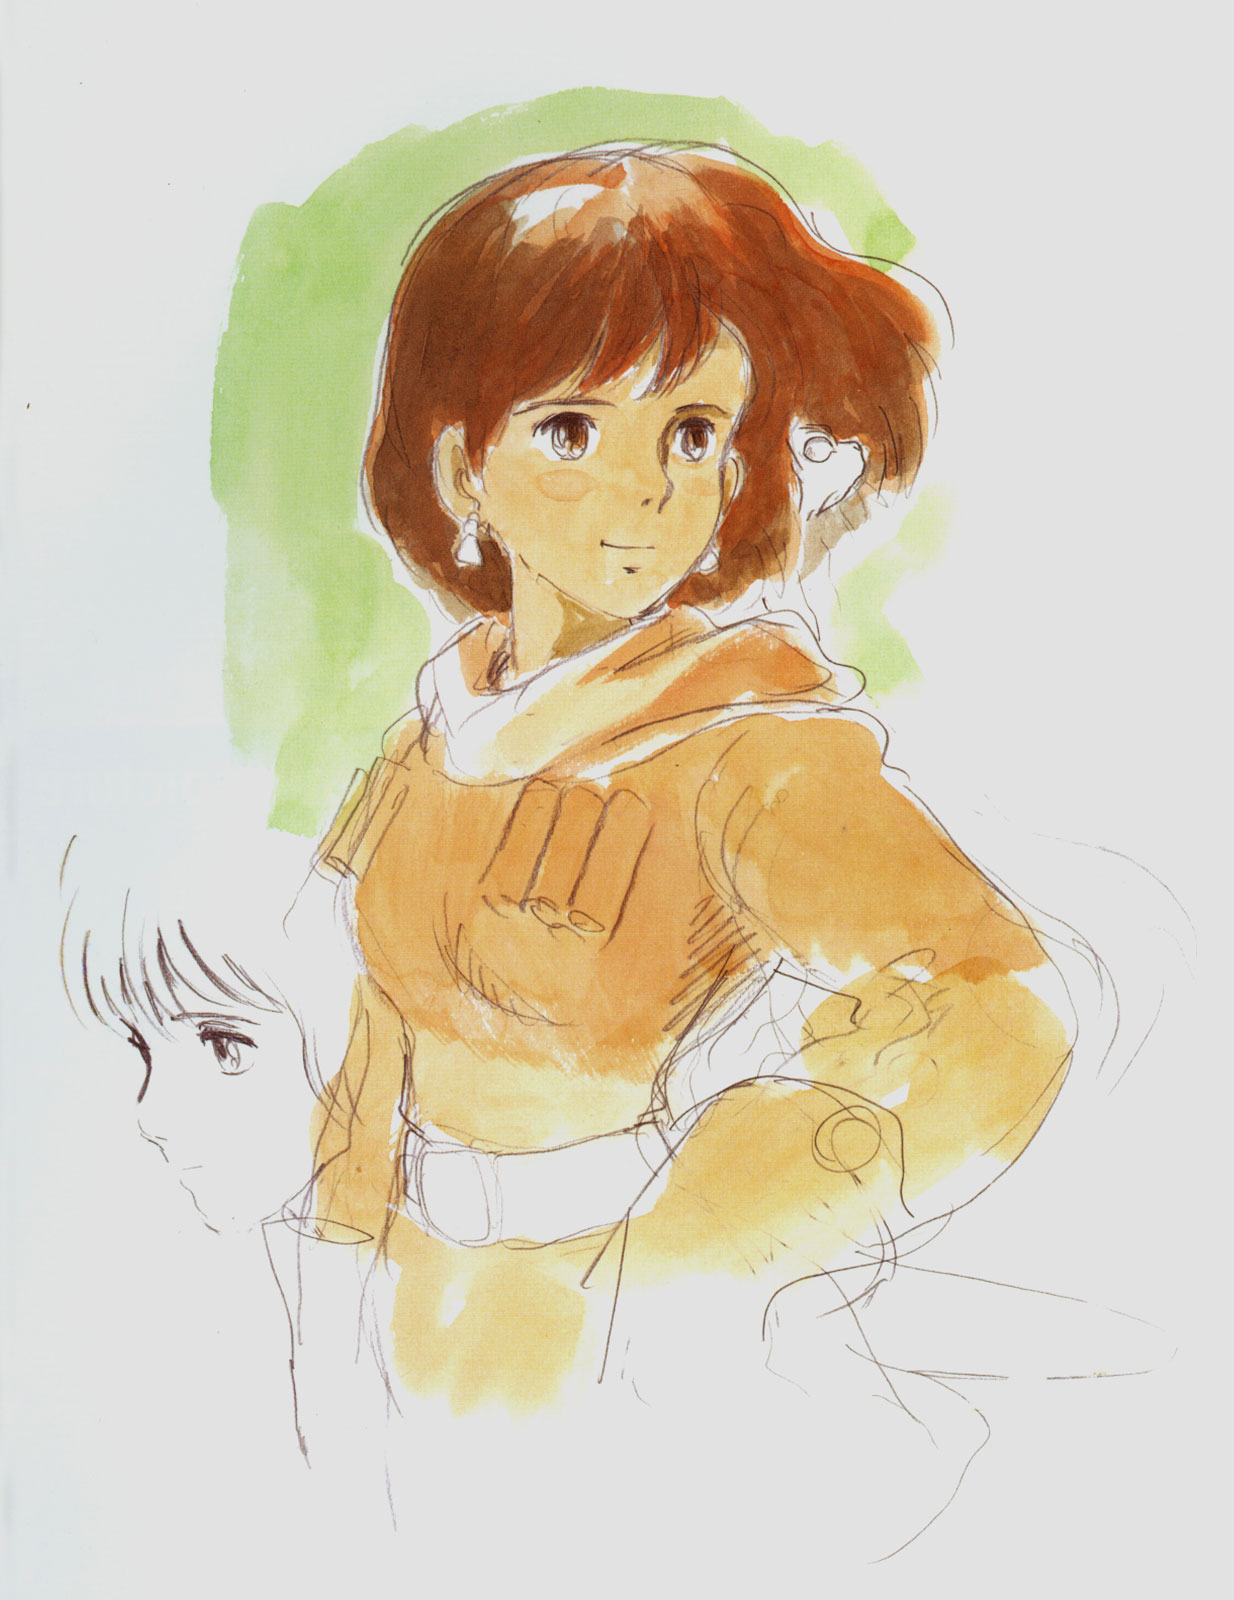 nausicaa_of_the_valley_of_the_wind_concept_art_character_00b.jpg